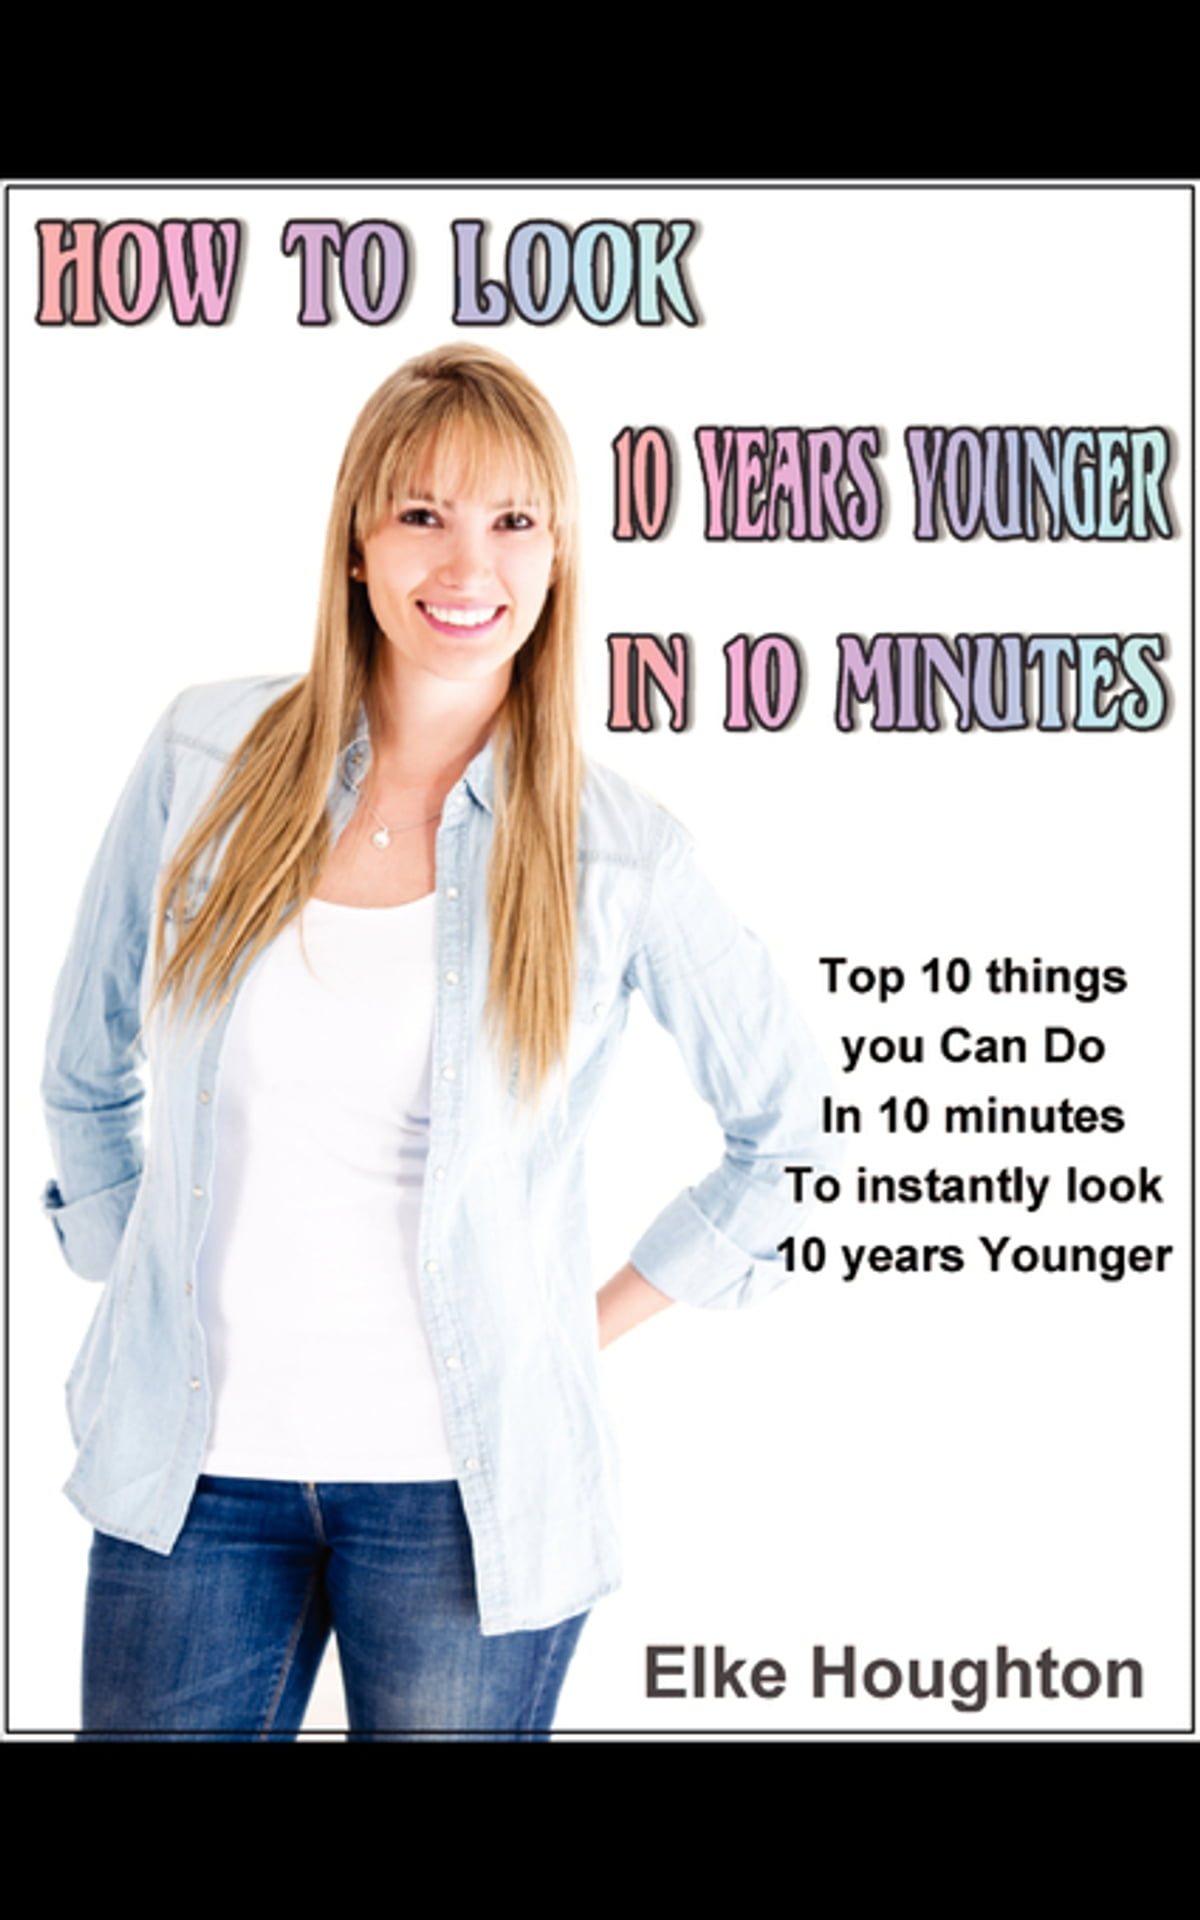 Communication on this topic: How to Look Younger in 10 Minutes, how-to-look-younger-in-10-minutes/